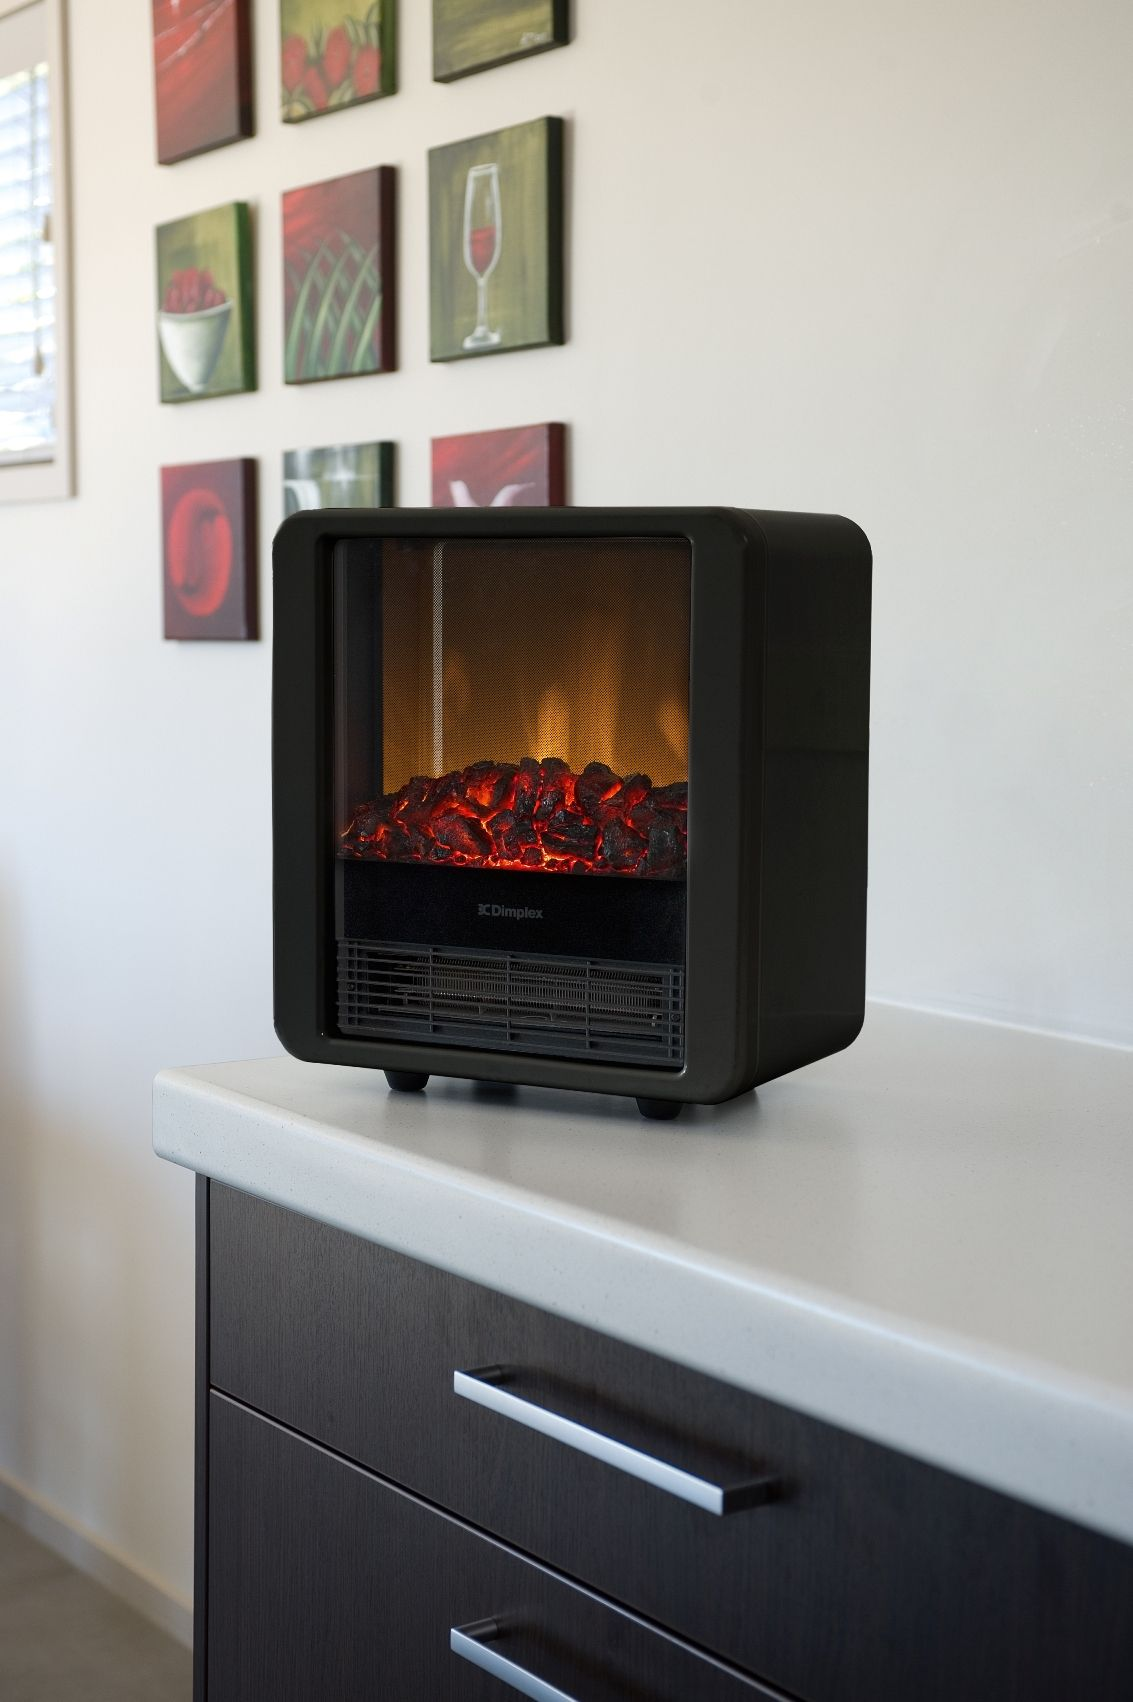 The Dimplex Mini Cube in Black is unique and charming. Add